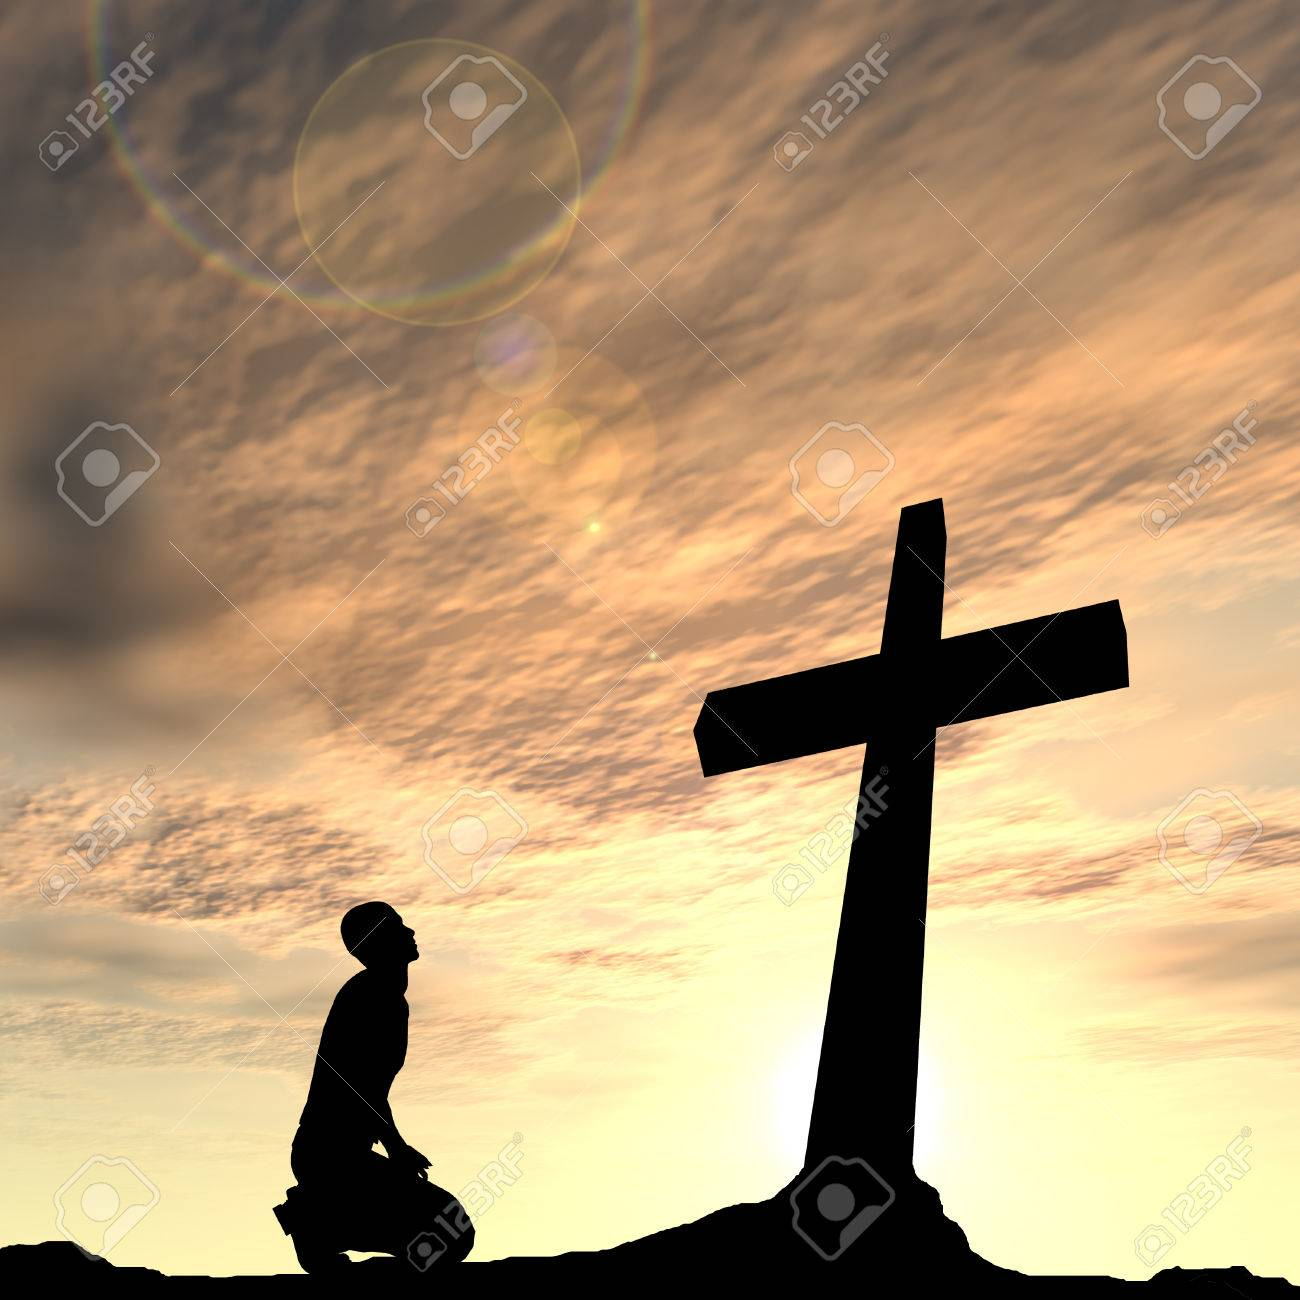 Conceptual religion black cross with a man praying at sunset background - 53346449